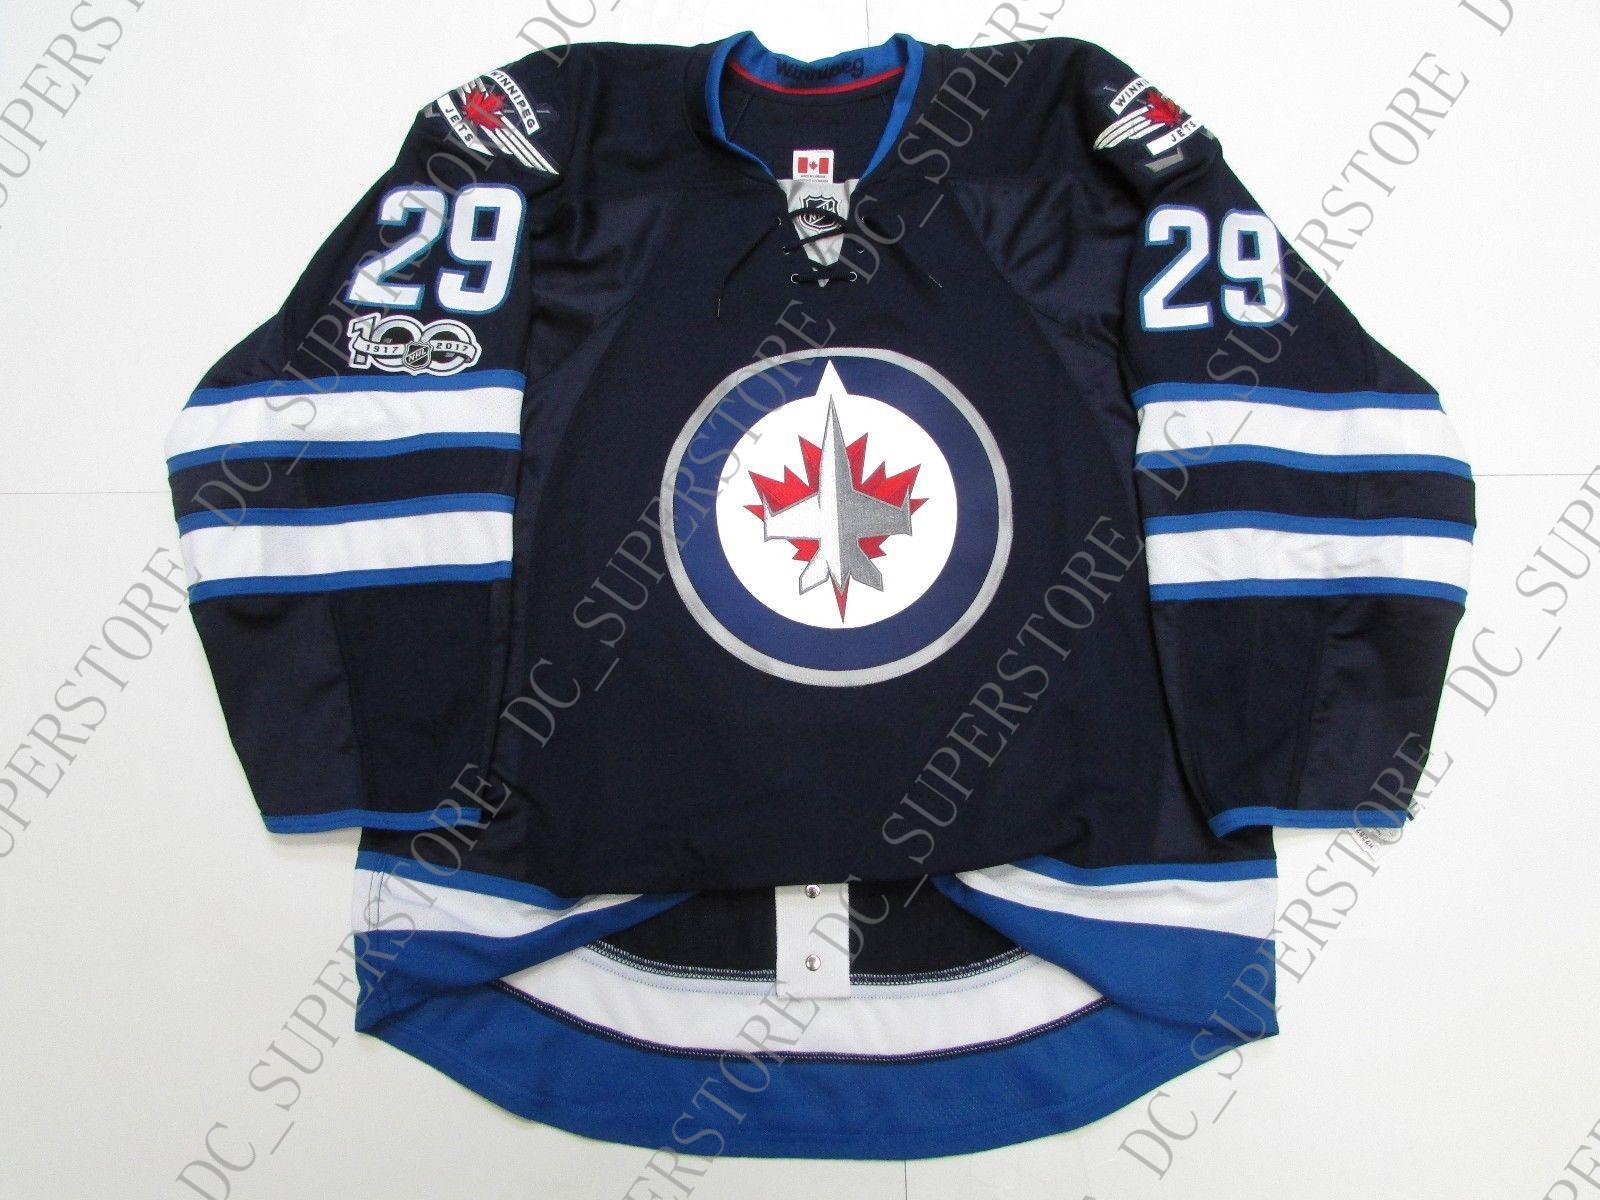 412148b241f 2019 Cheap Custom LAINE WINNIPEG JETS HOME 100th ANNIVERSARY JERSEY Stitch  Add Any Number Any Name Mens Hockey Jersey XS 5XL From Dc_superstore, ...